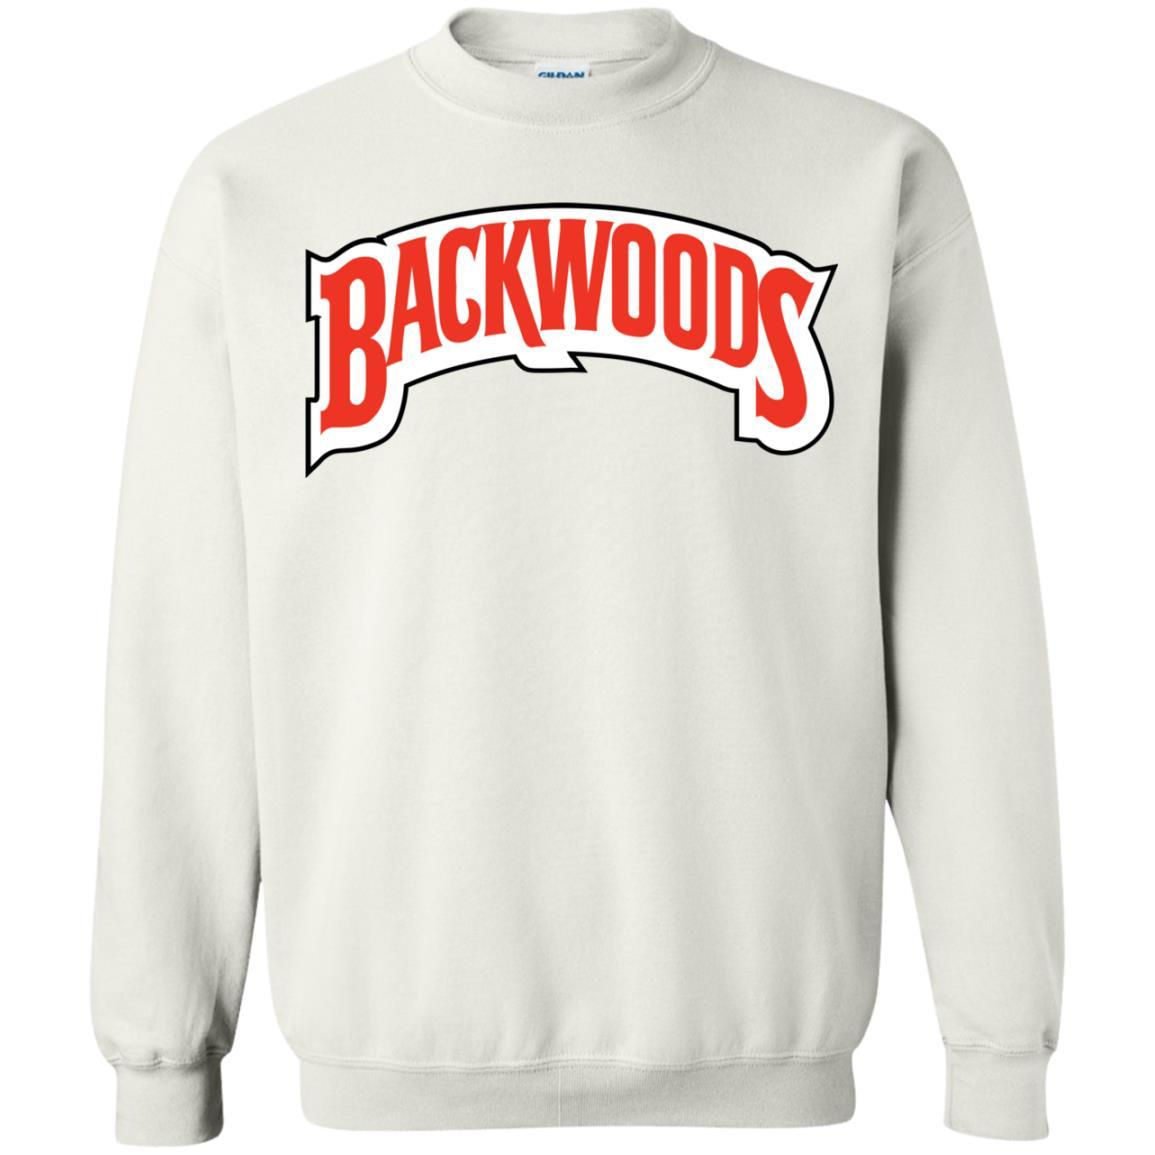 Backwoods - Pullover Sweatshirt Style / Color / Size